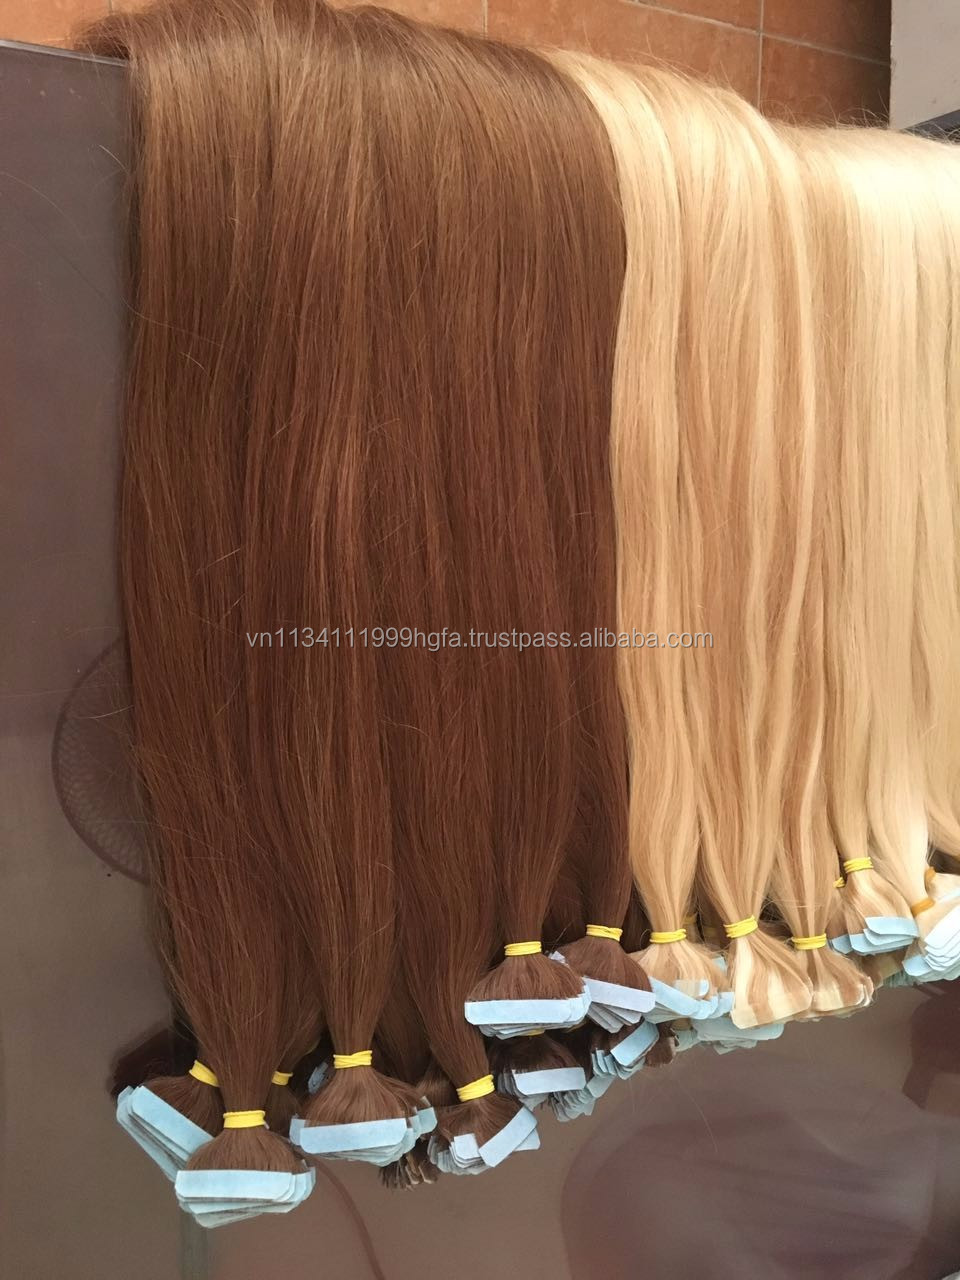 Italian Glue Tape Hair Extension #22 #613 #6 400g Straight machine Weft Hair Extensions 2016